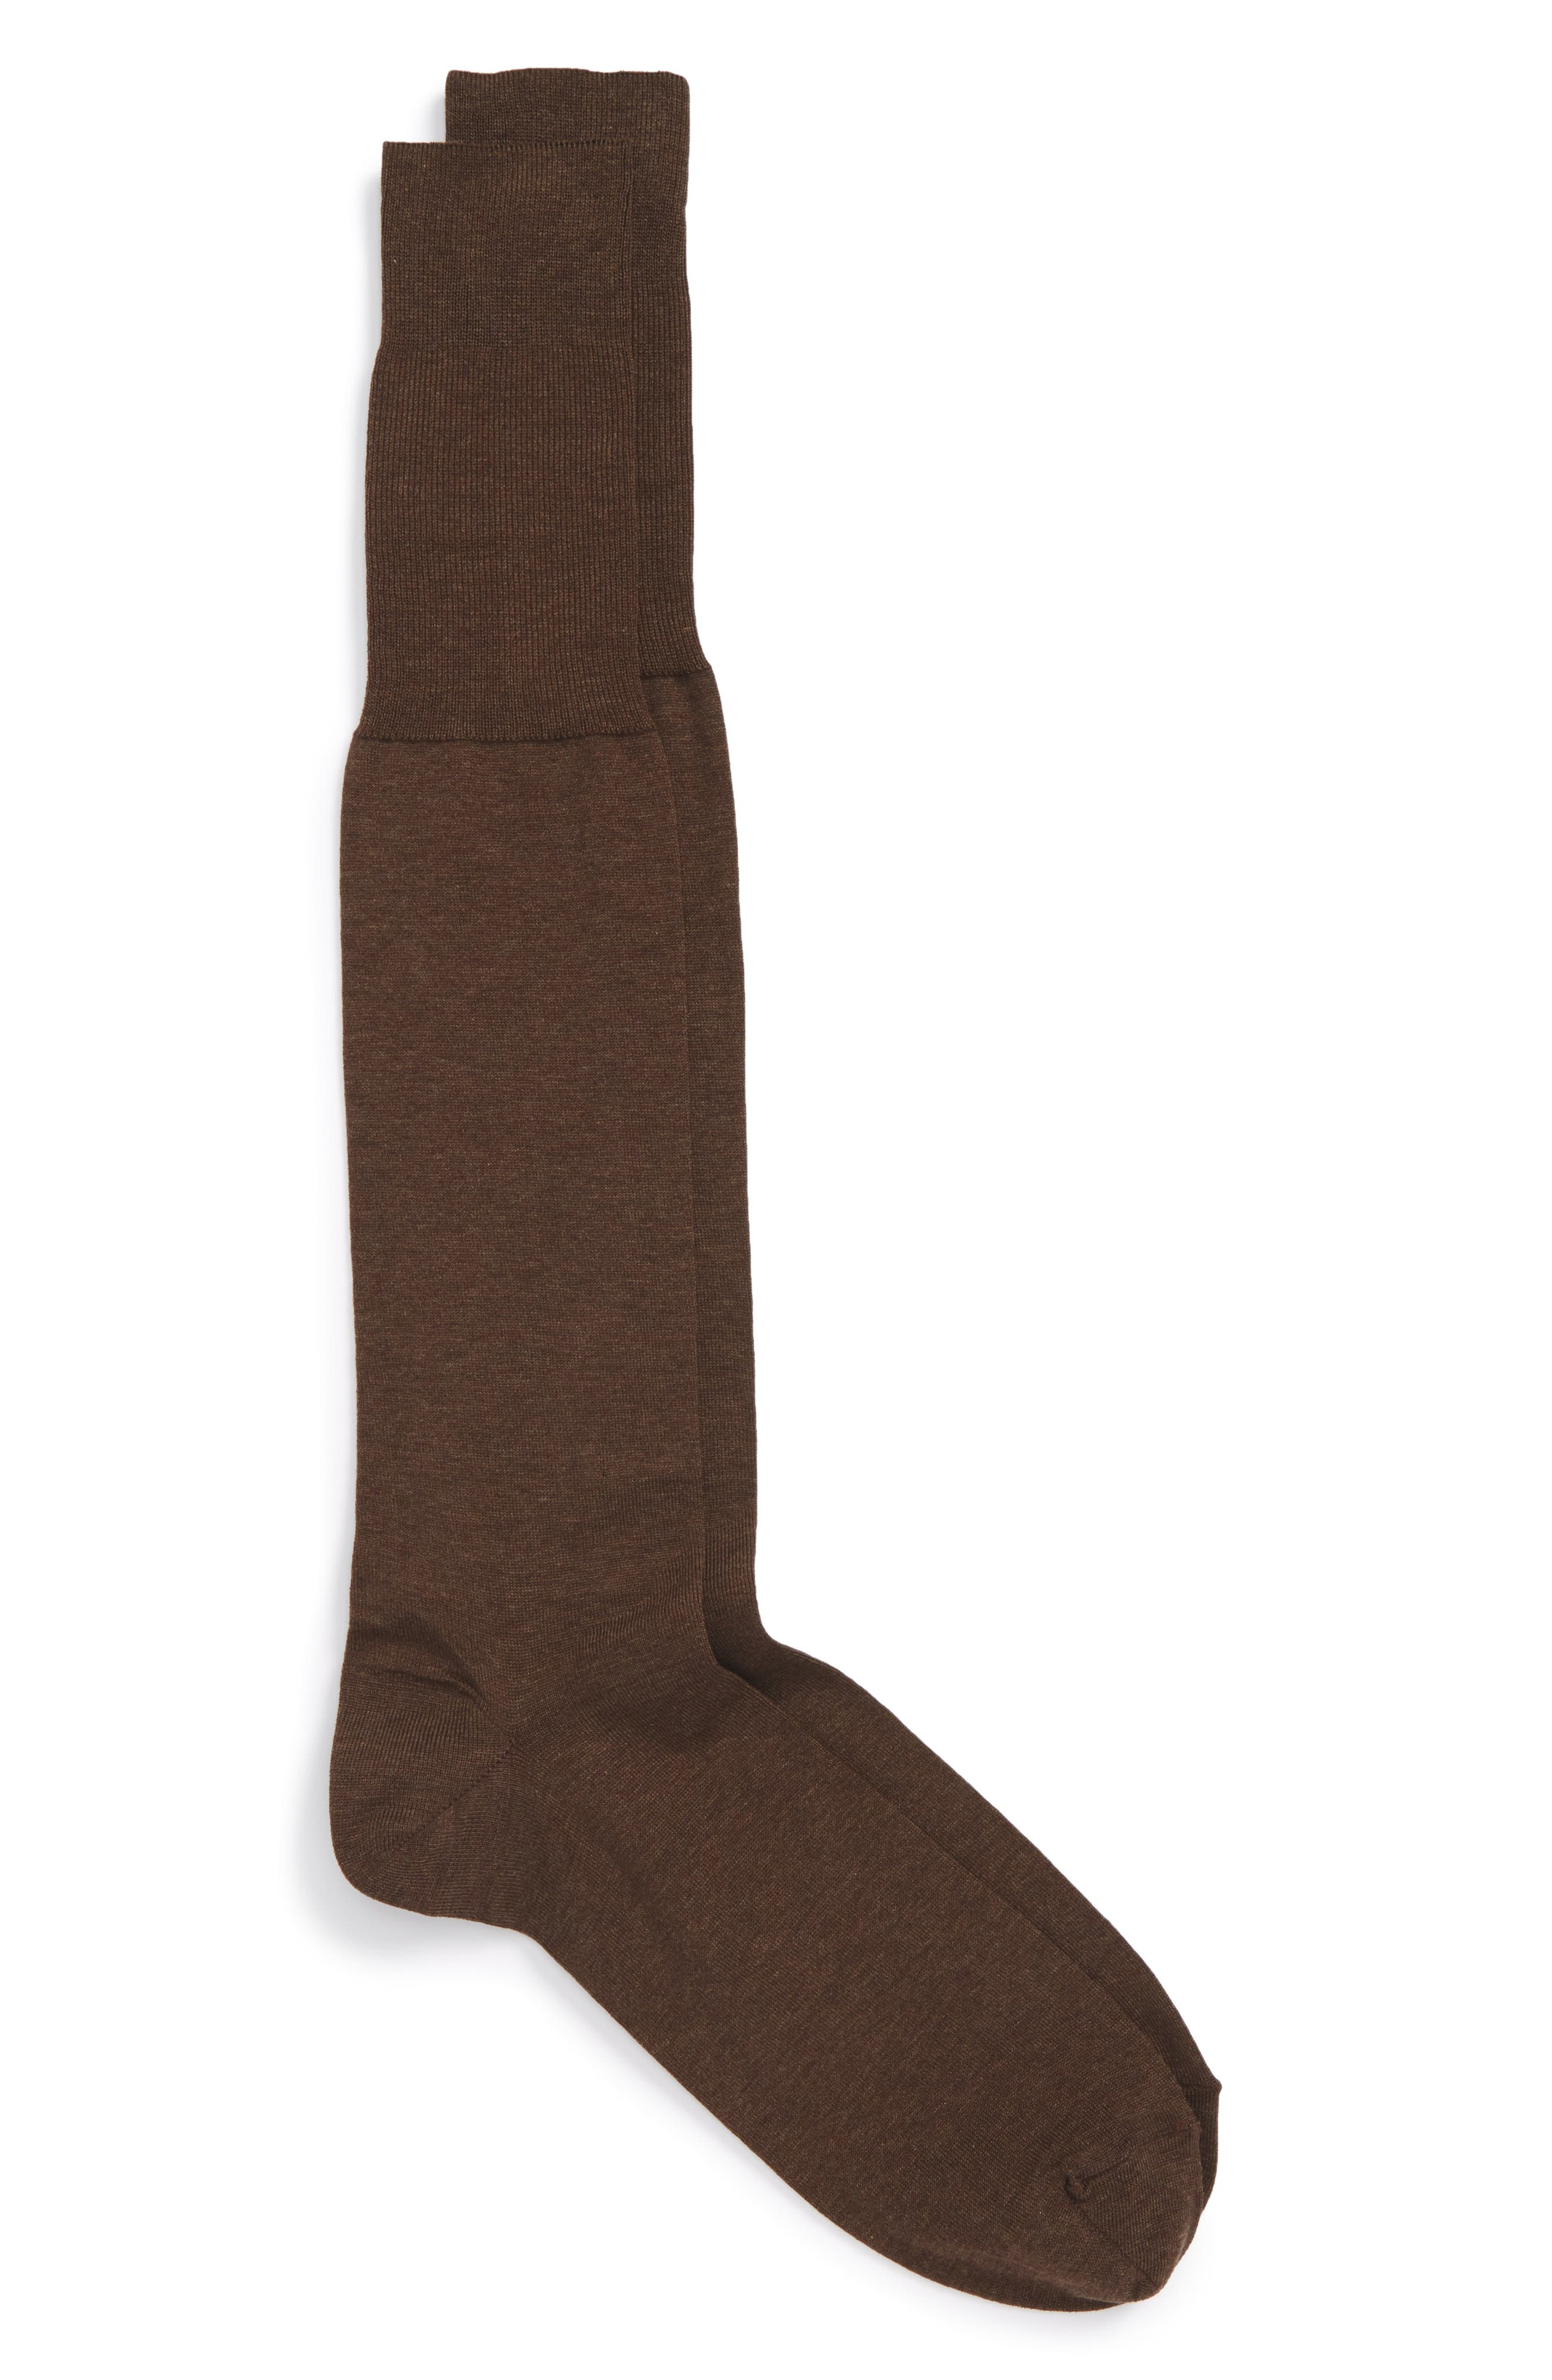 John W. Nordstrom Solid Over the Calf Socks,                         Main,                         color, BROWN HEATHER